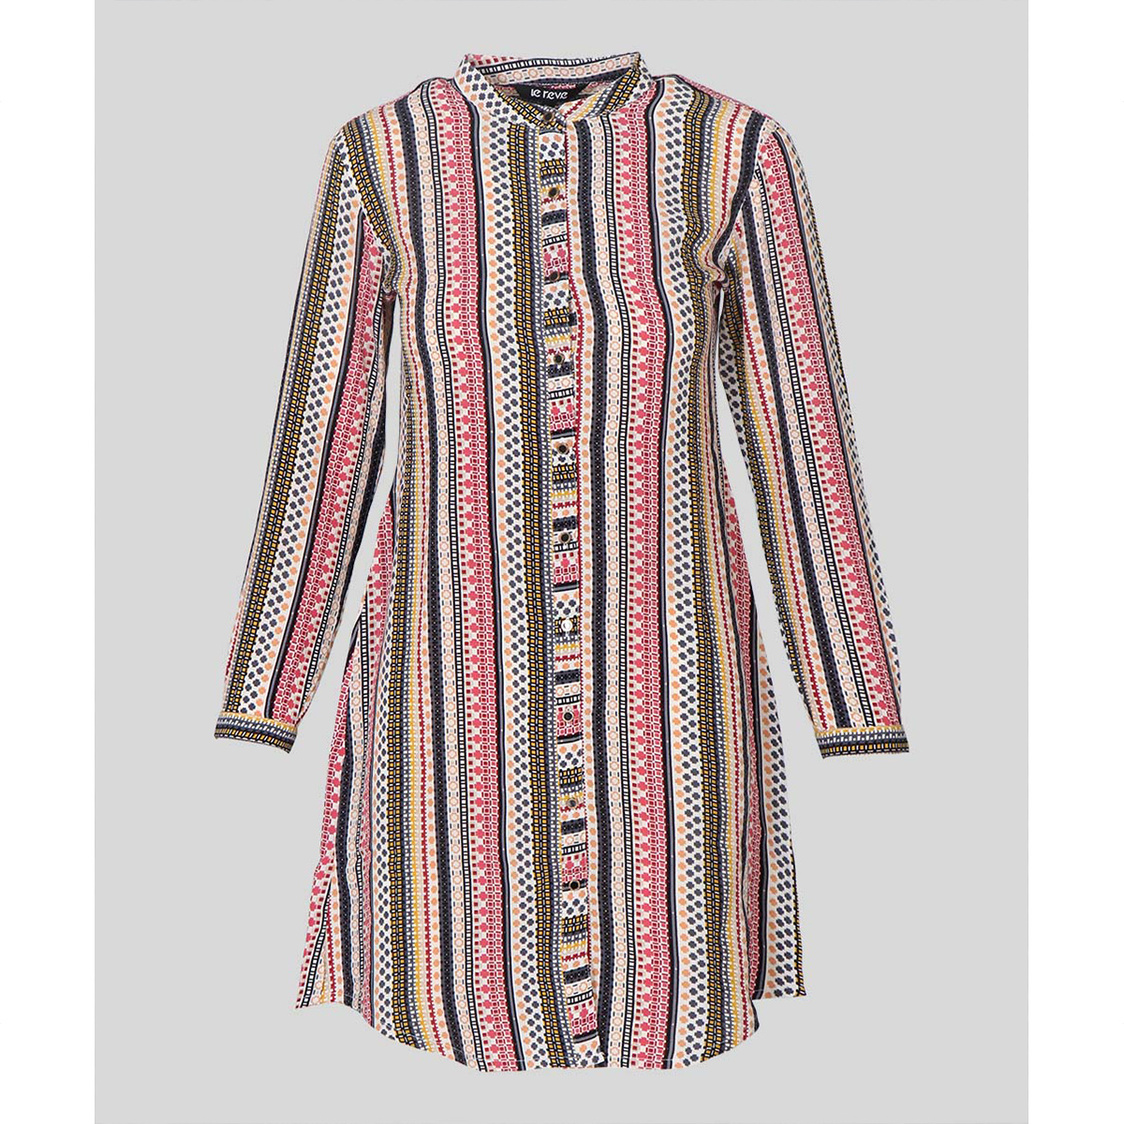 Multi Color Shirt Style Tunic